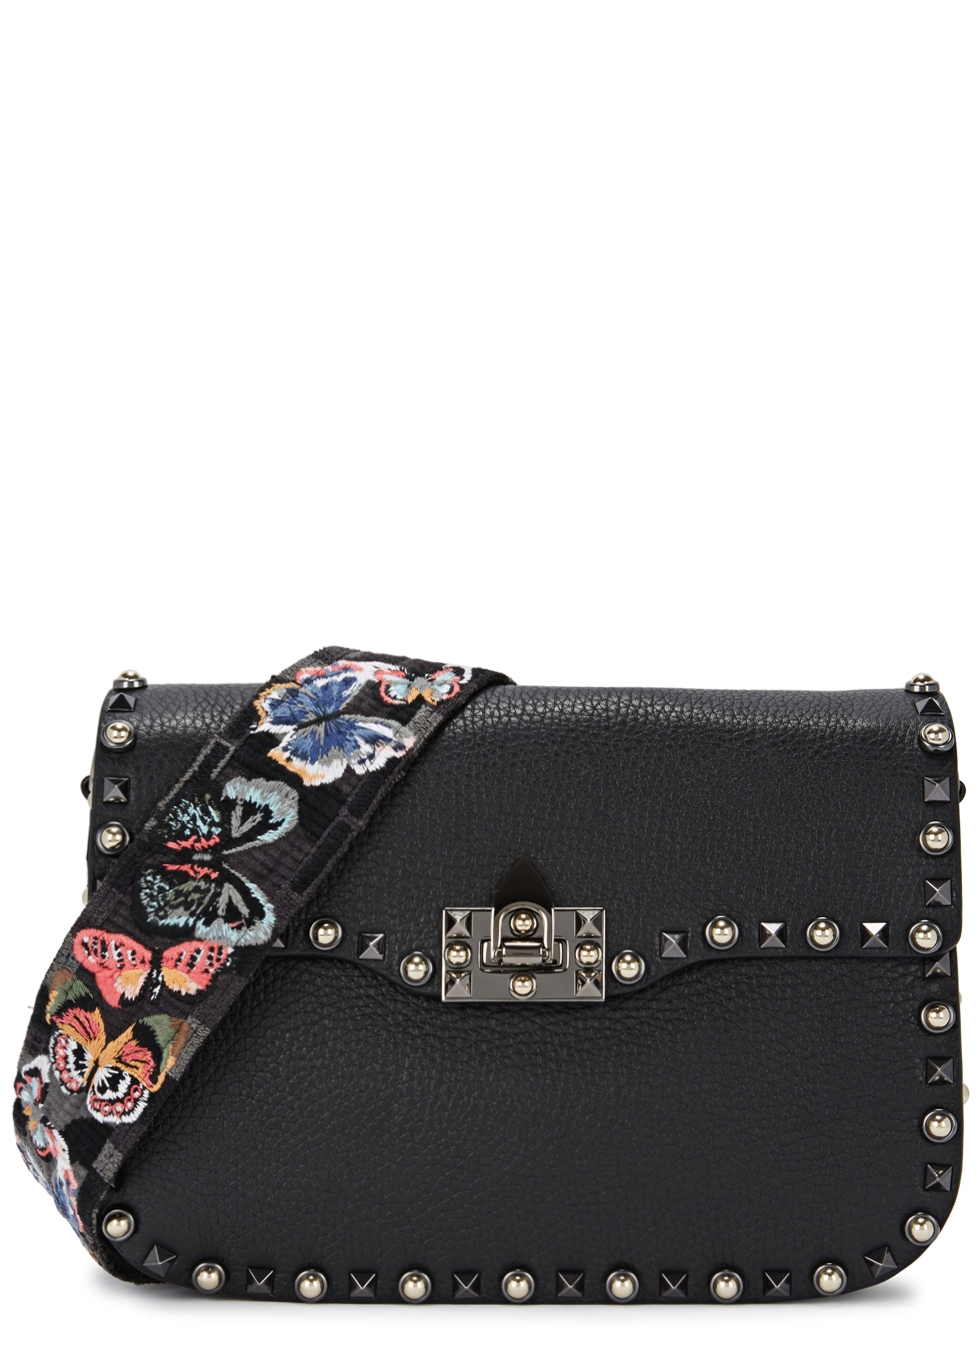 ROCKSTUD ROLLING BLACK LEATHER SHOULDER BAG